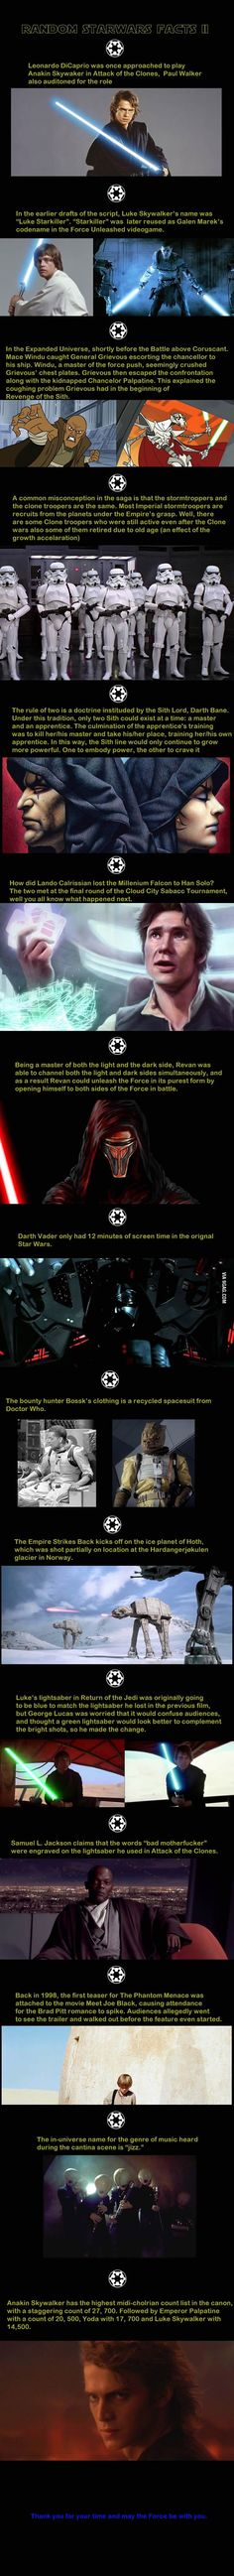 Facts about Star Wars you didn't know. #geeksquad